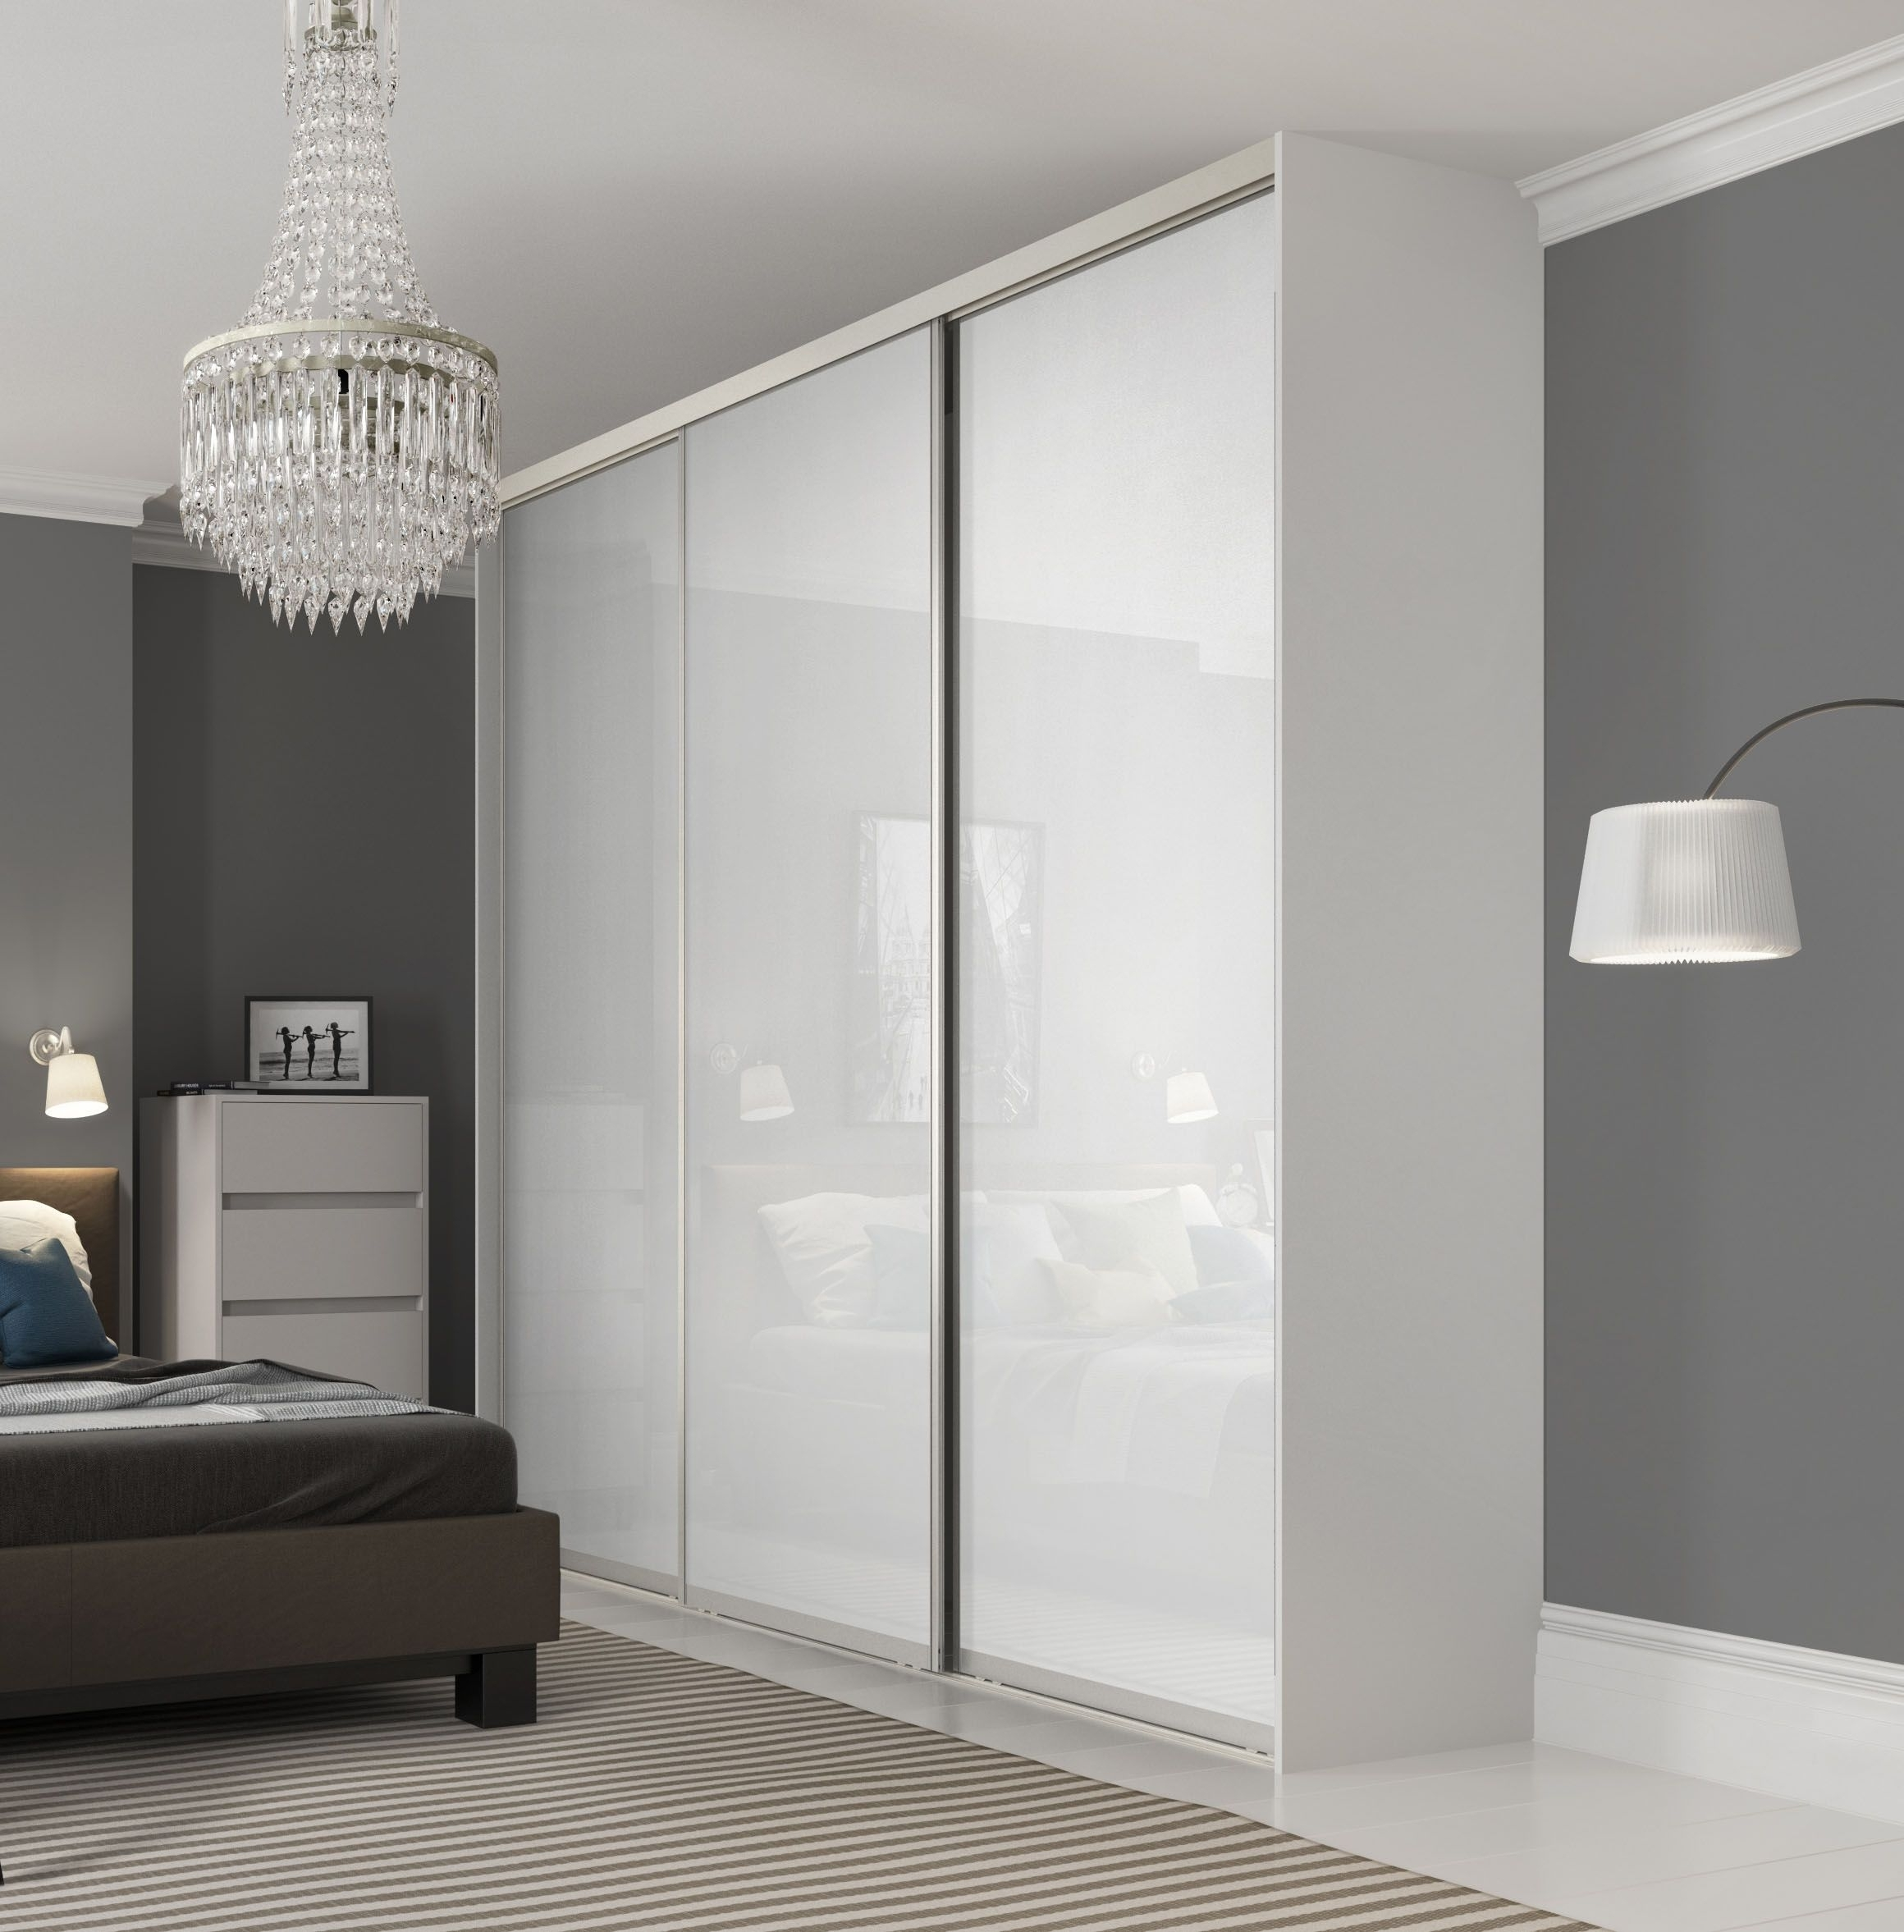 Premium Midi Single Panel Sliding Wardrobe Doors In Pure White In Recent Silver Wardrobes (View 7 of 15)